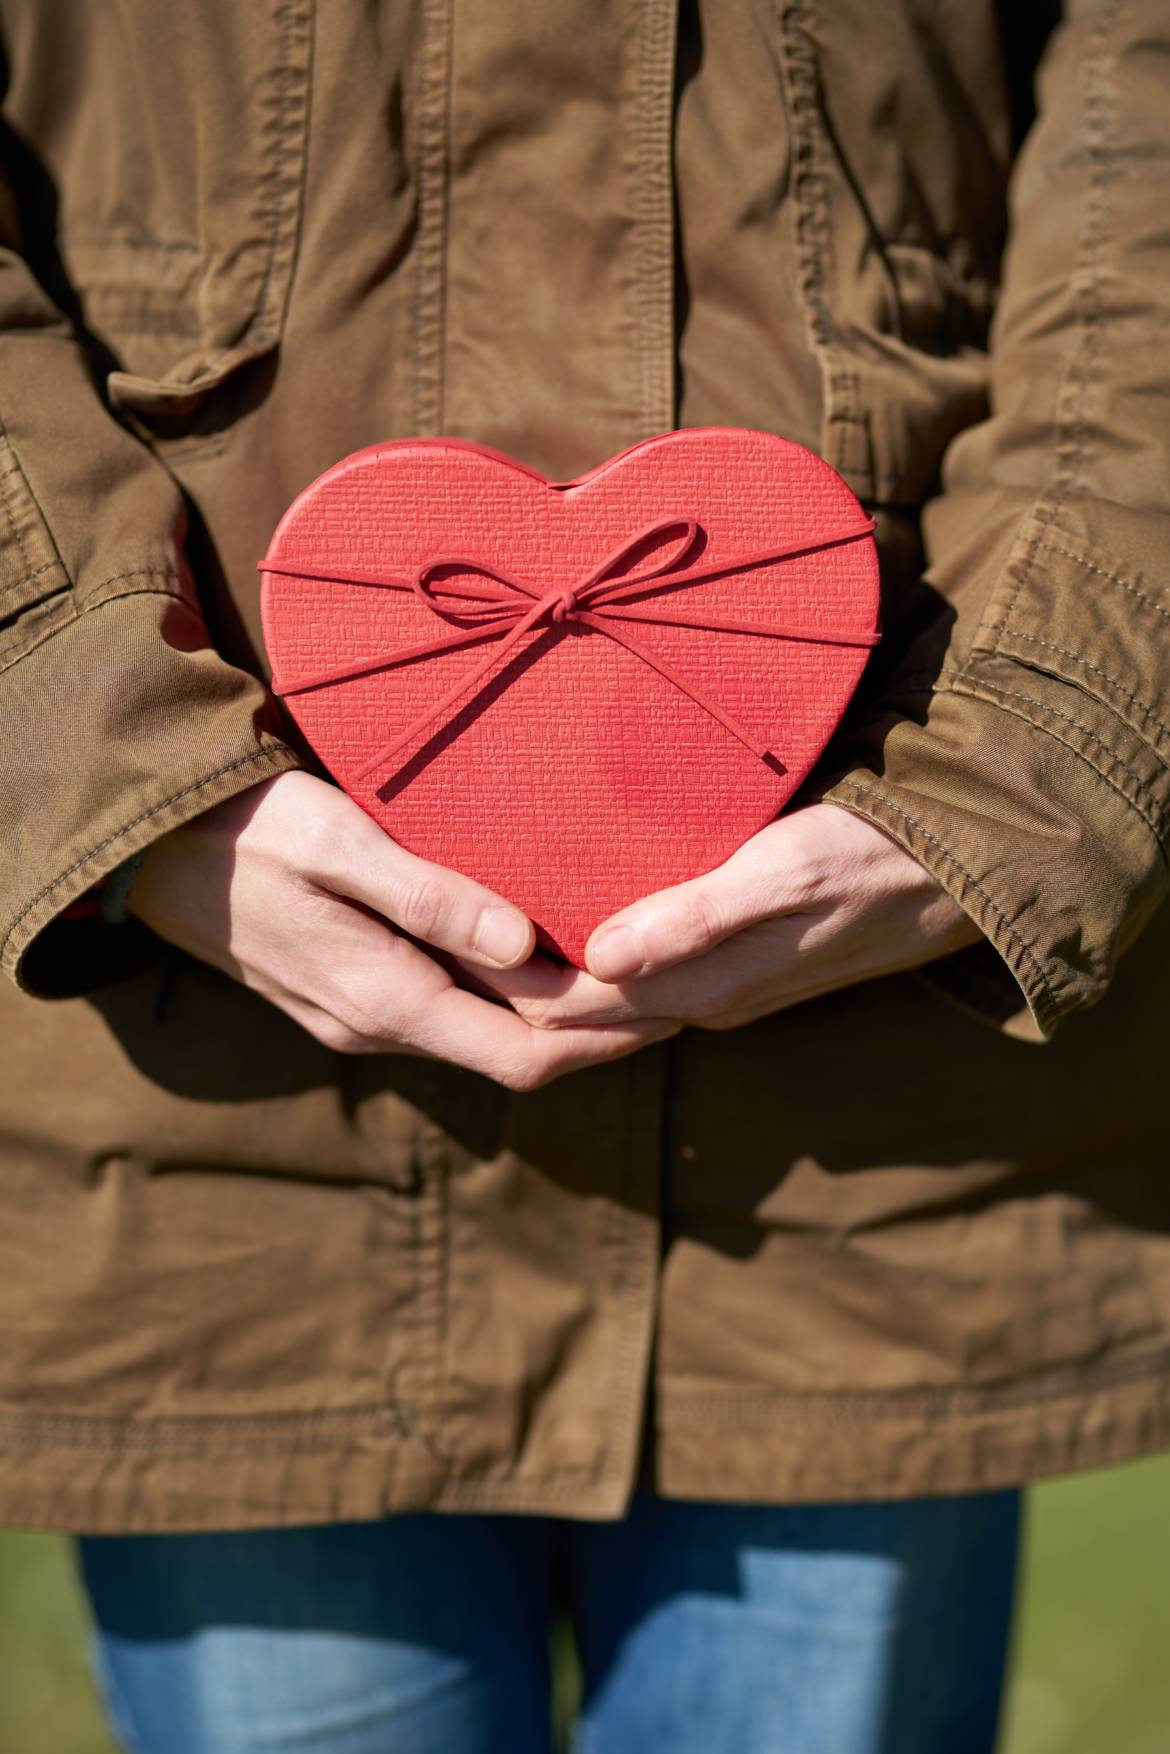 person-holding-heart-shaped-gift-1820503.jpg